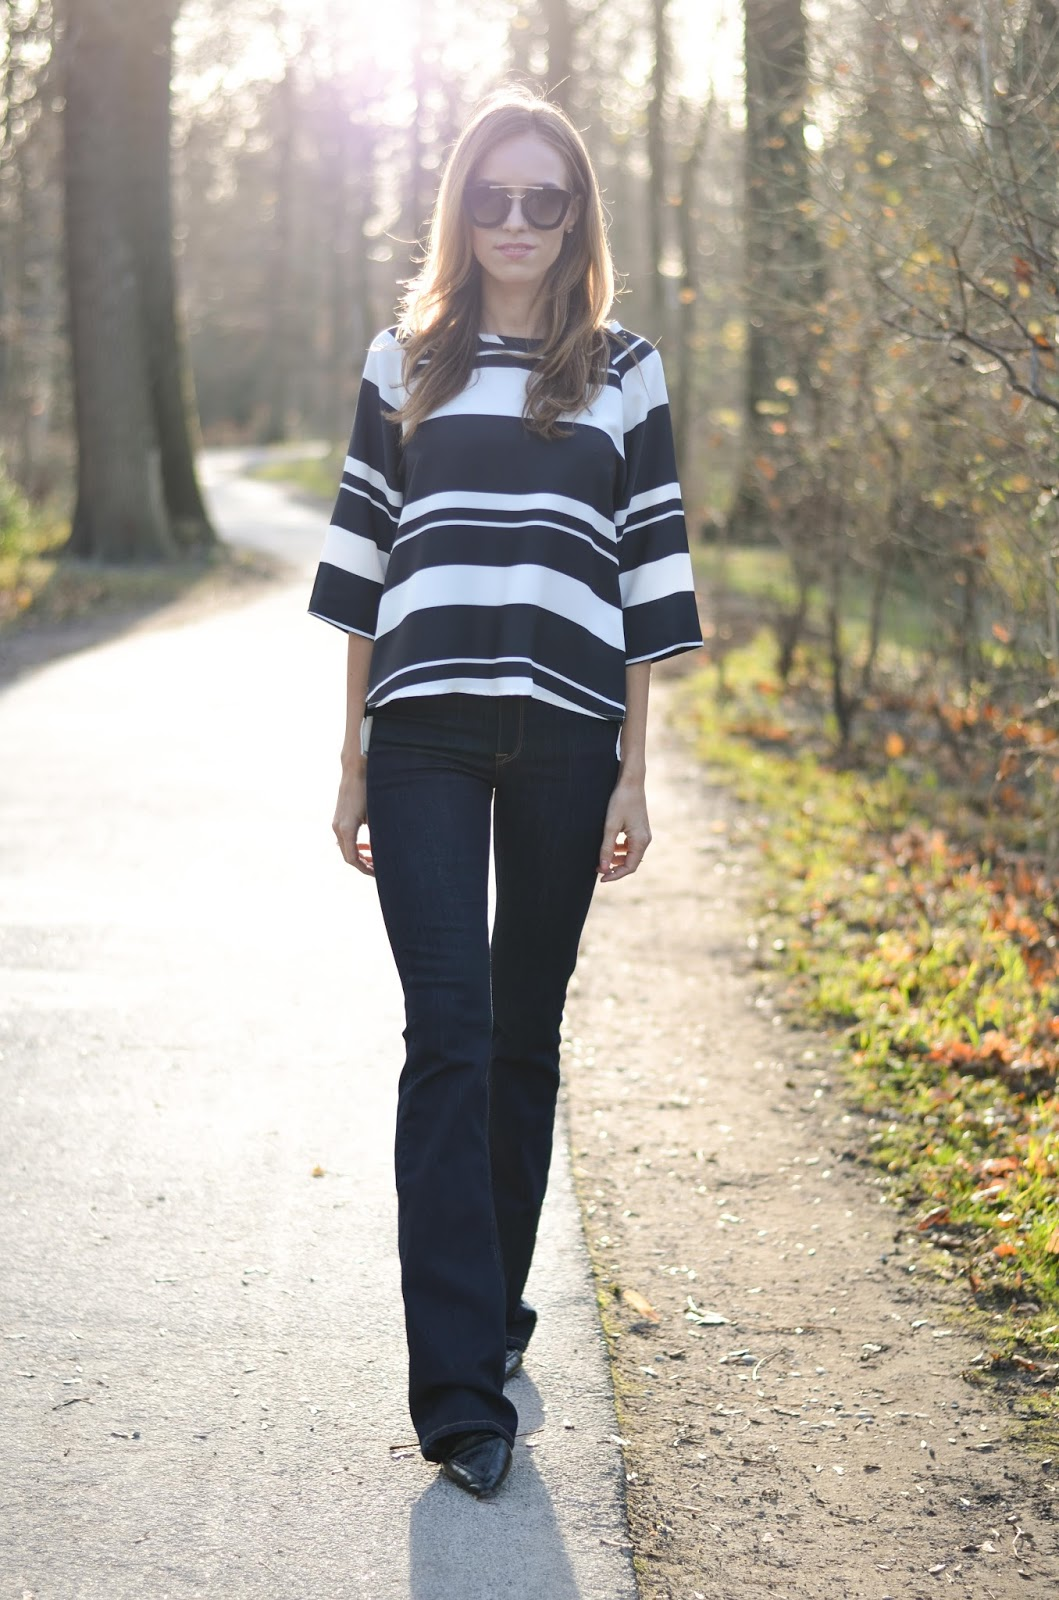 kristjaana mere striped top flare jeans point toe flats fall outfit